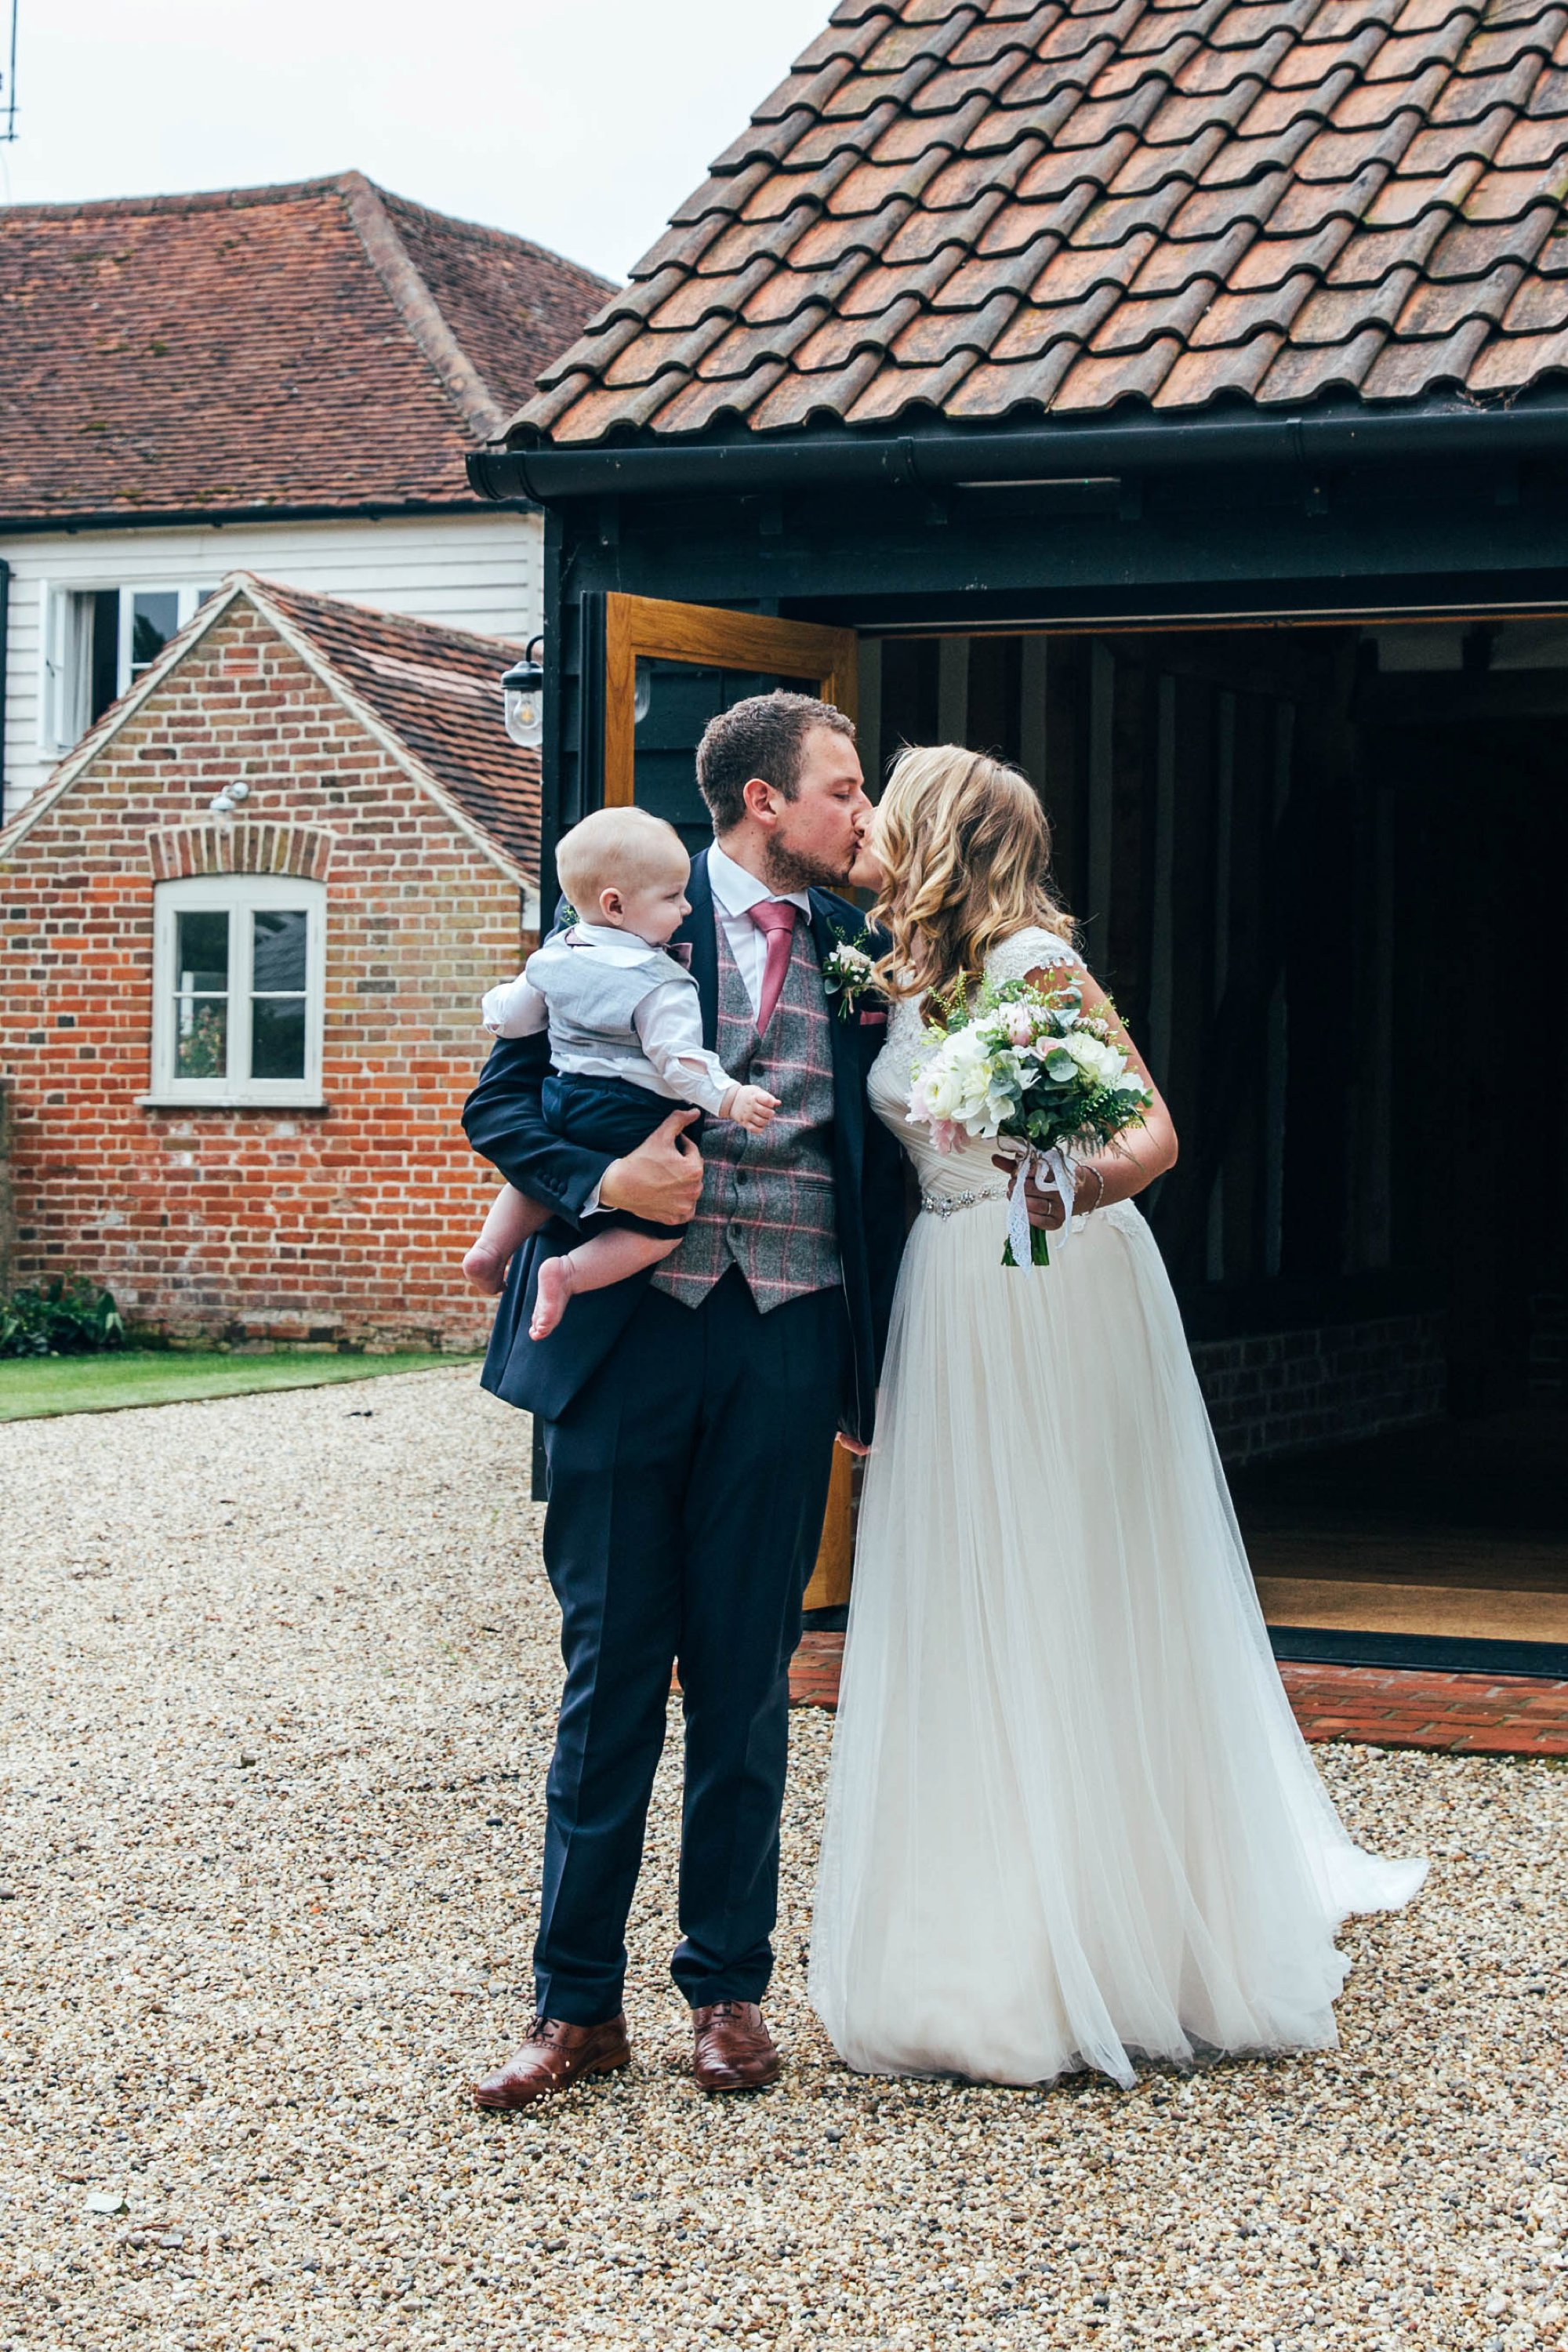 Blush Pink Spring Barn Wedding Blake Hall Essex. Bride wears Maggie Sottero, Essex Documentary Wedding Photographer